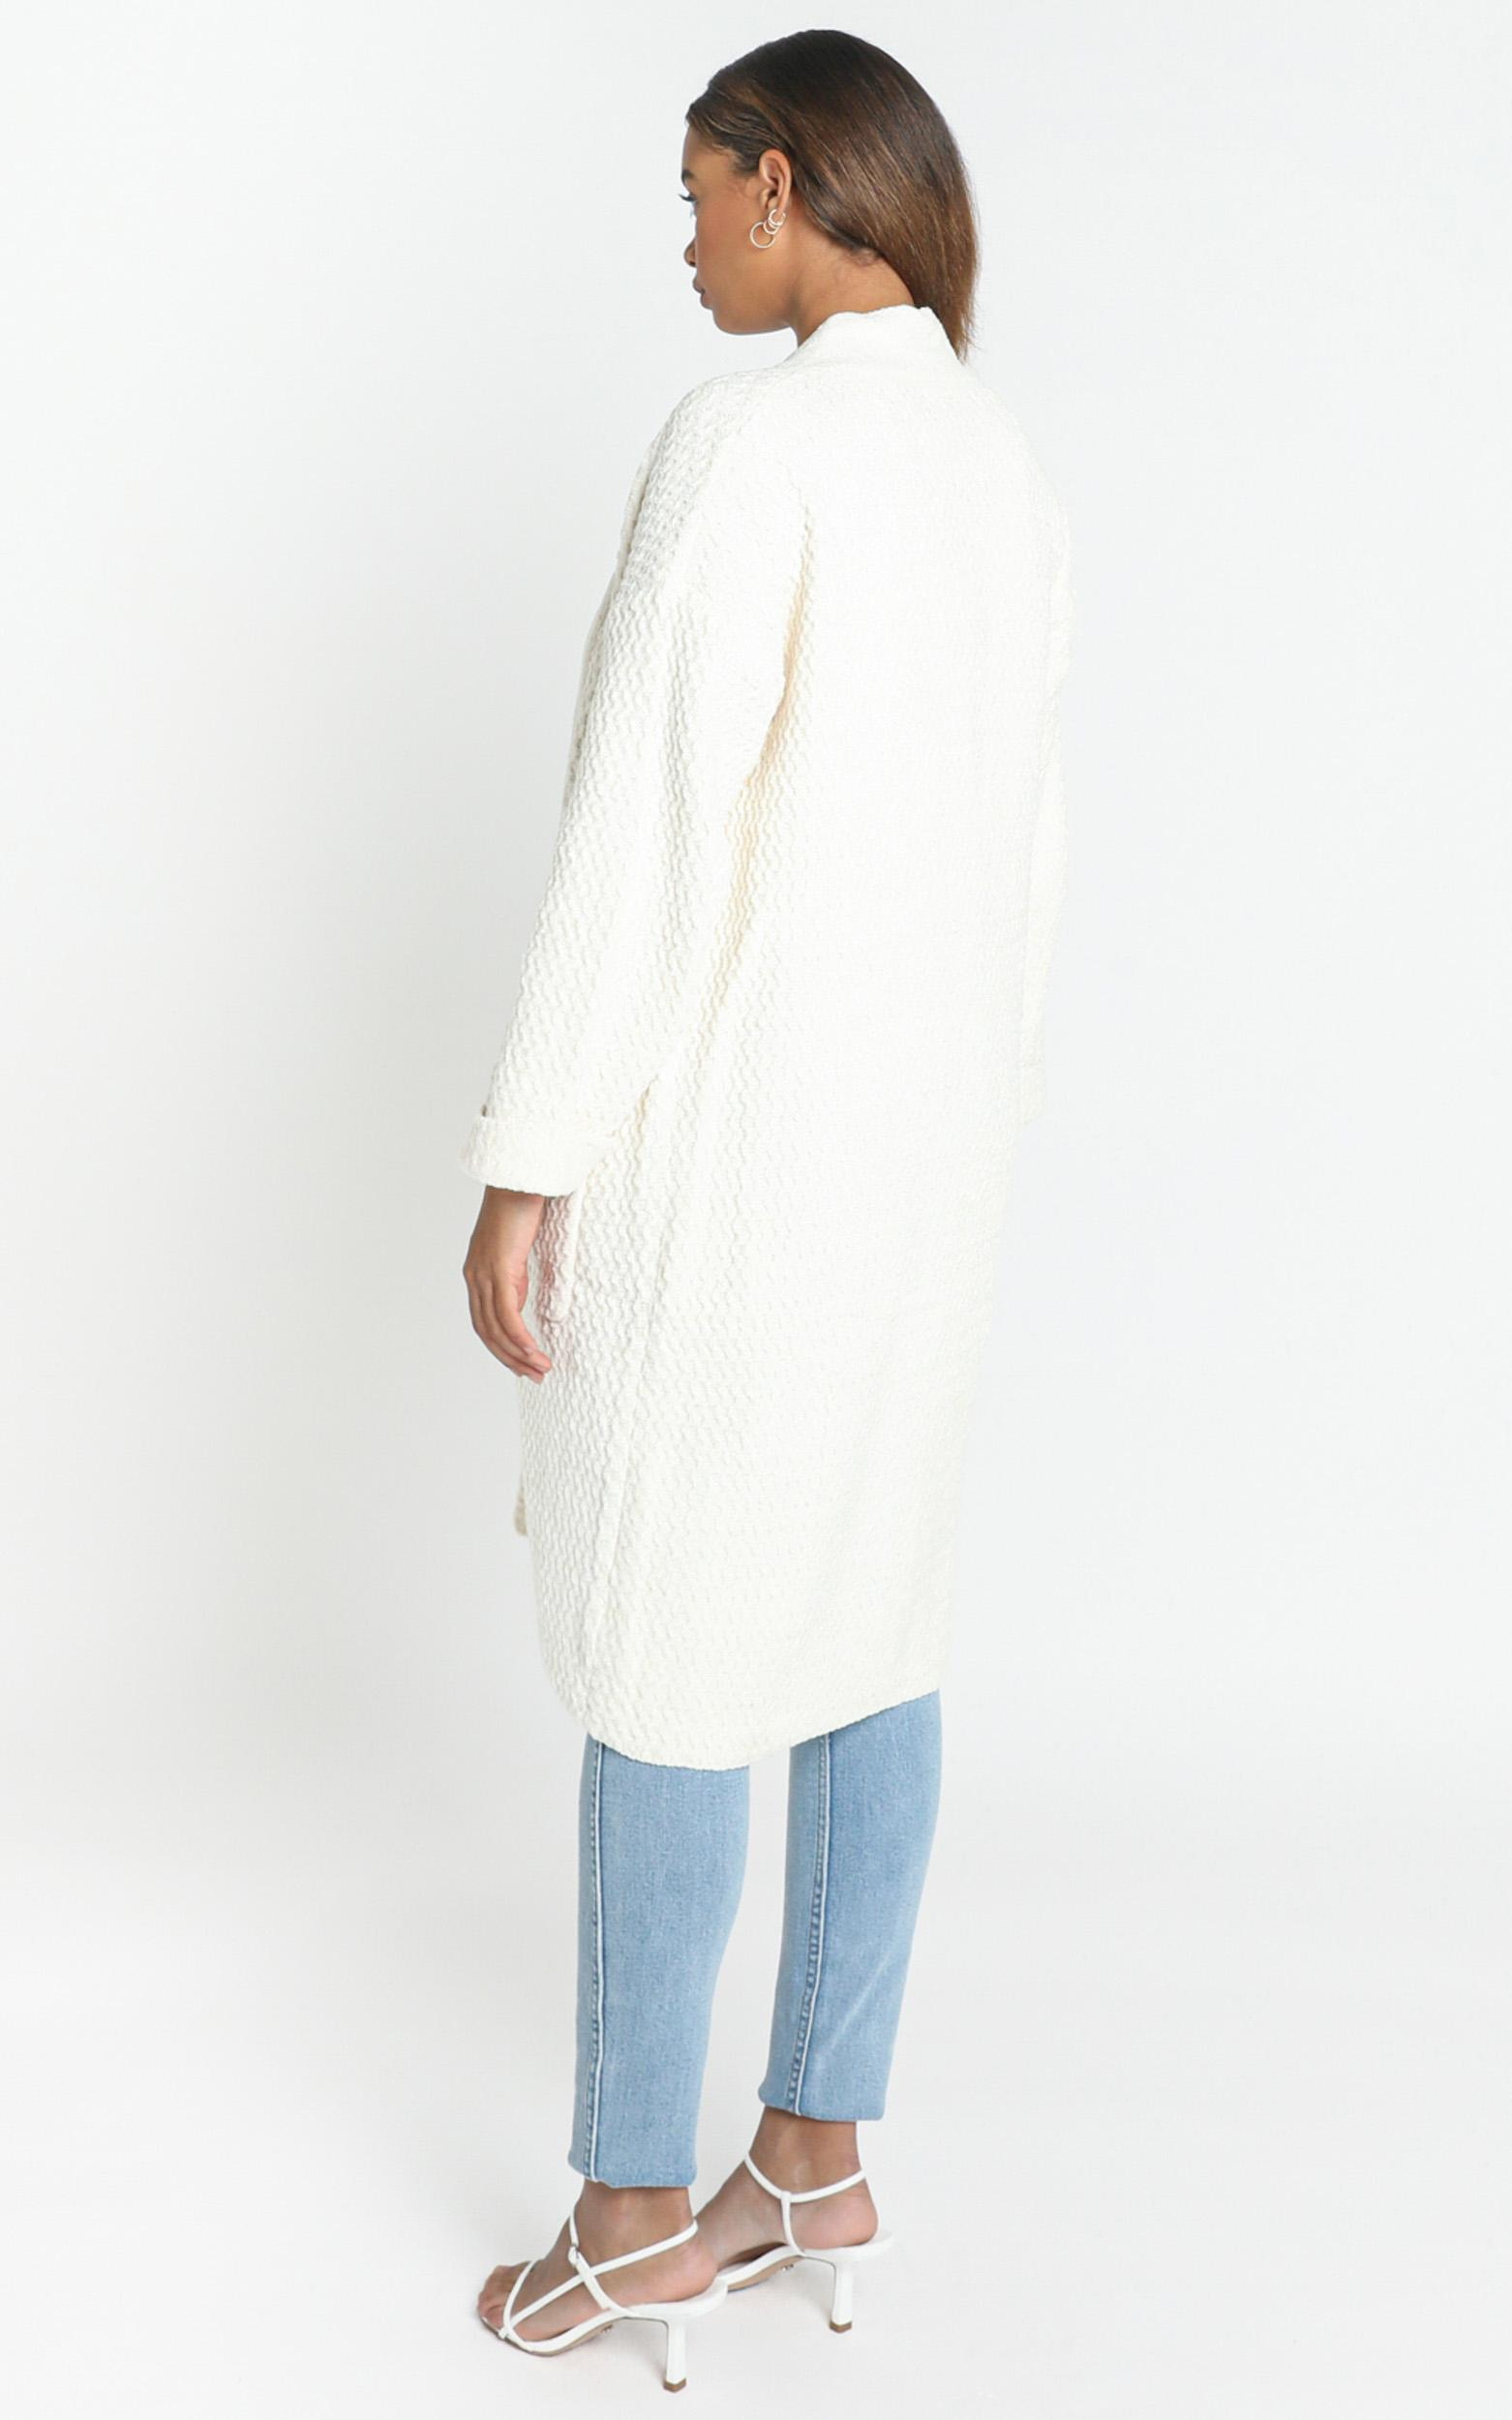 Gwendolyn Cardigan in Cream - M/L, CRE1, hi-res image number null